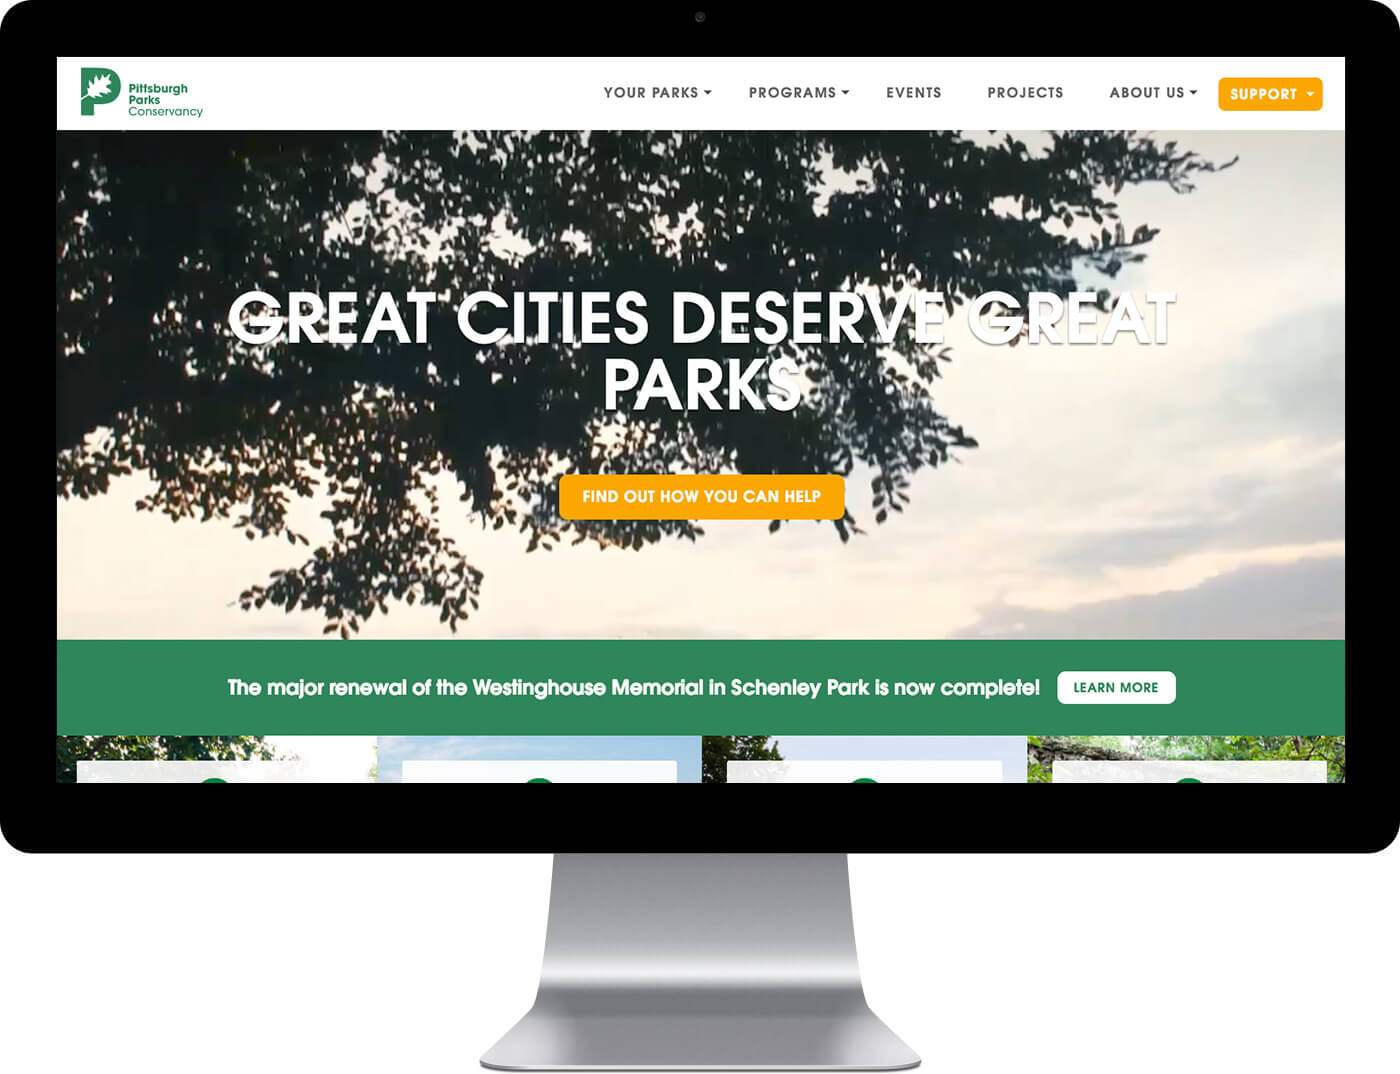 Pittsburgh Parks Custom Home page design on a desktop monitor